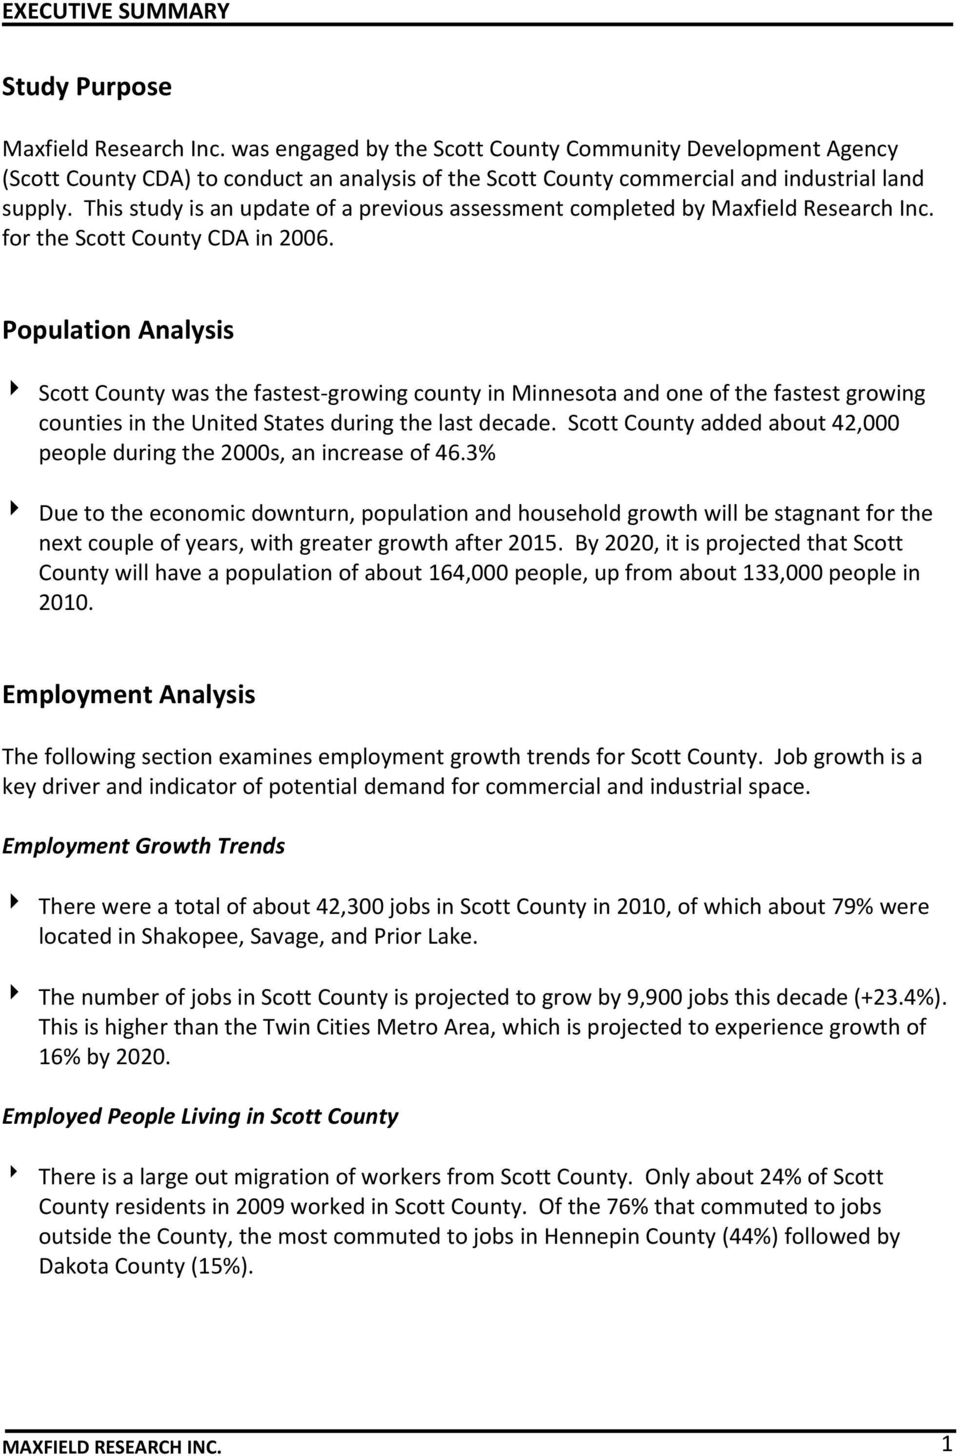 This study is an update of a previous assessment completed by Maxfield Research Inc. for the Scott County CDA in 2006.